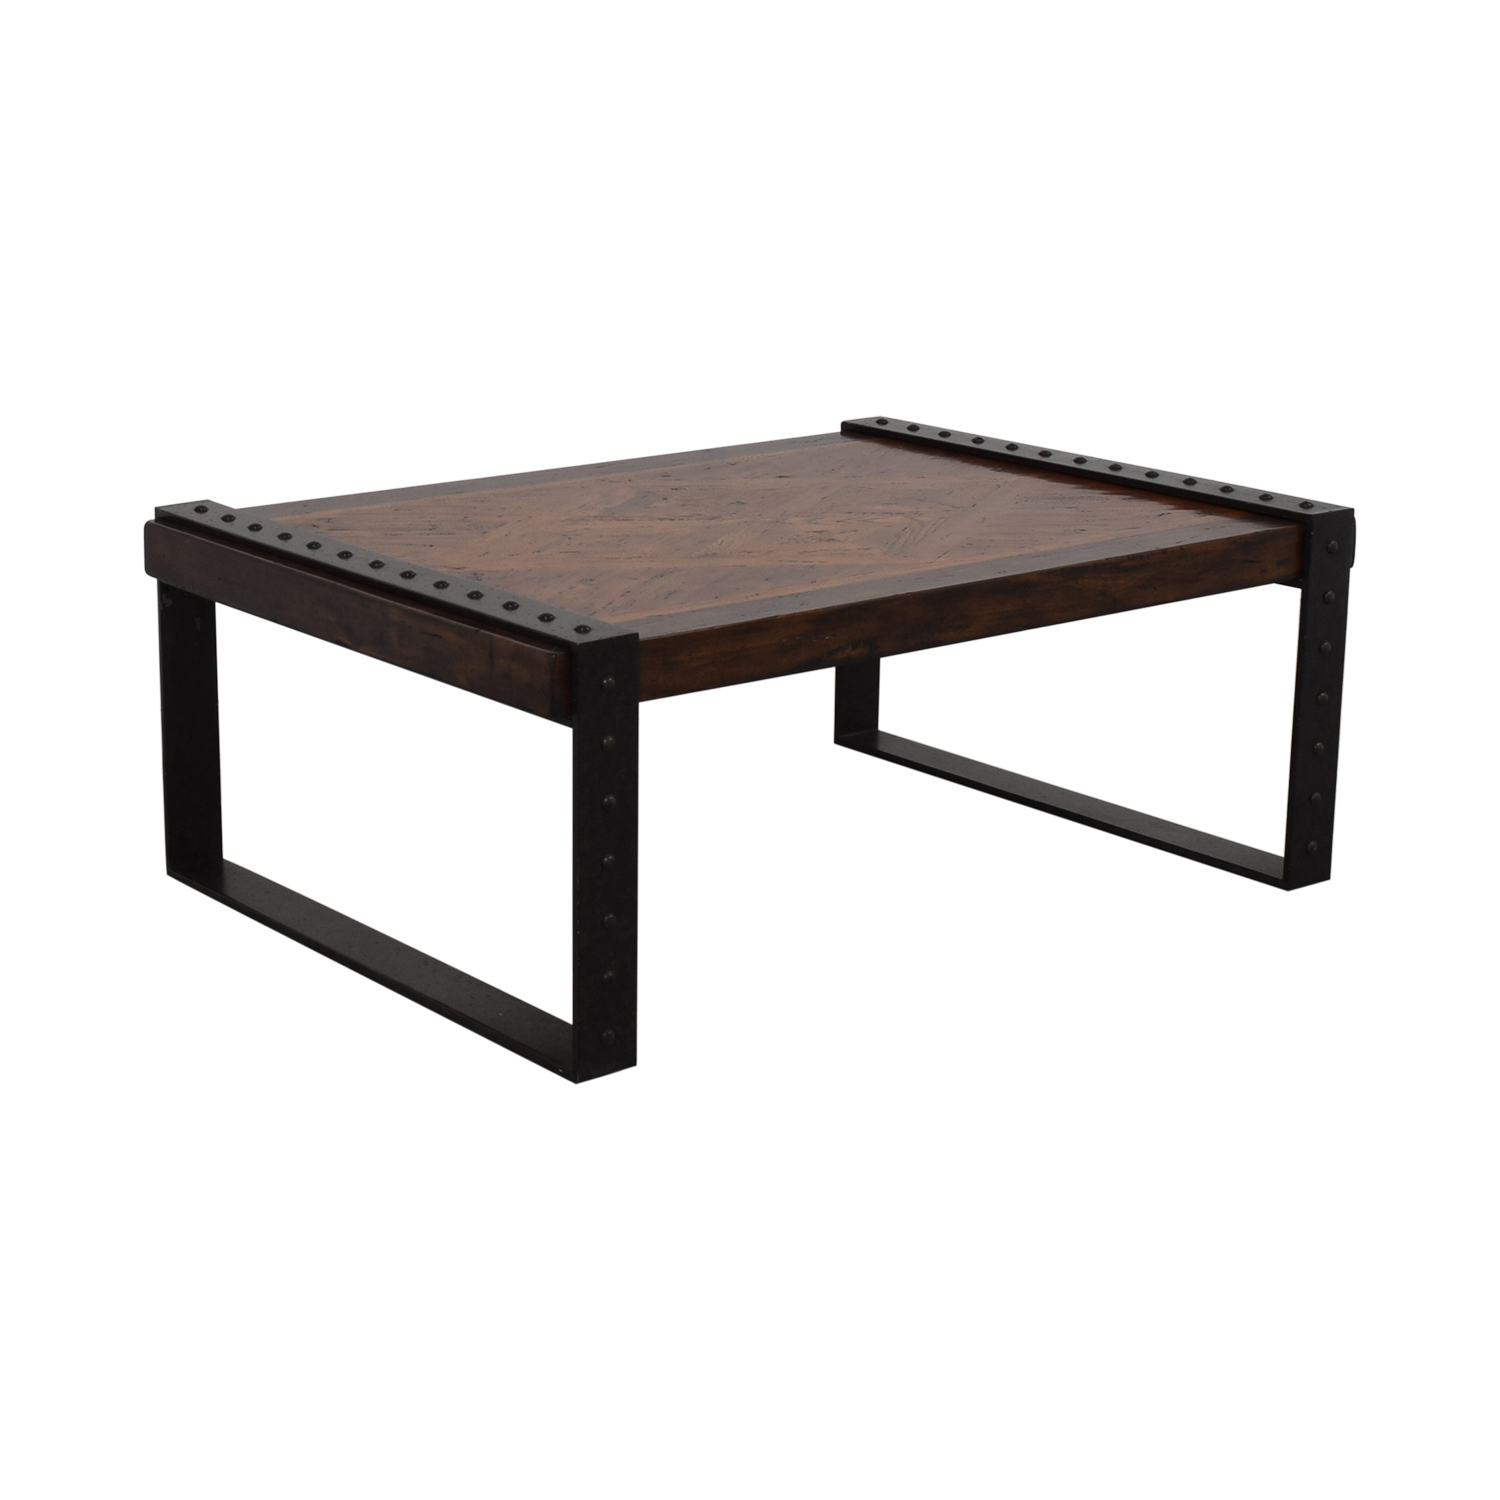 Theodore Alexander Industrial Style Coffee Table / Coffee Tables